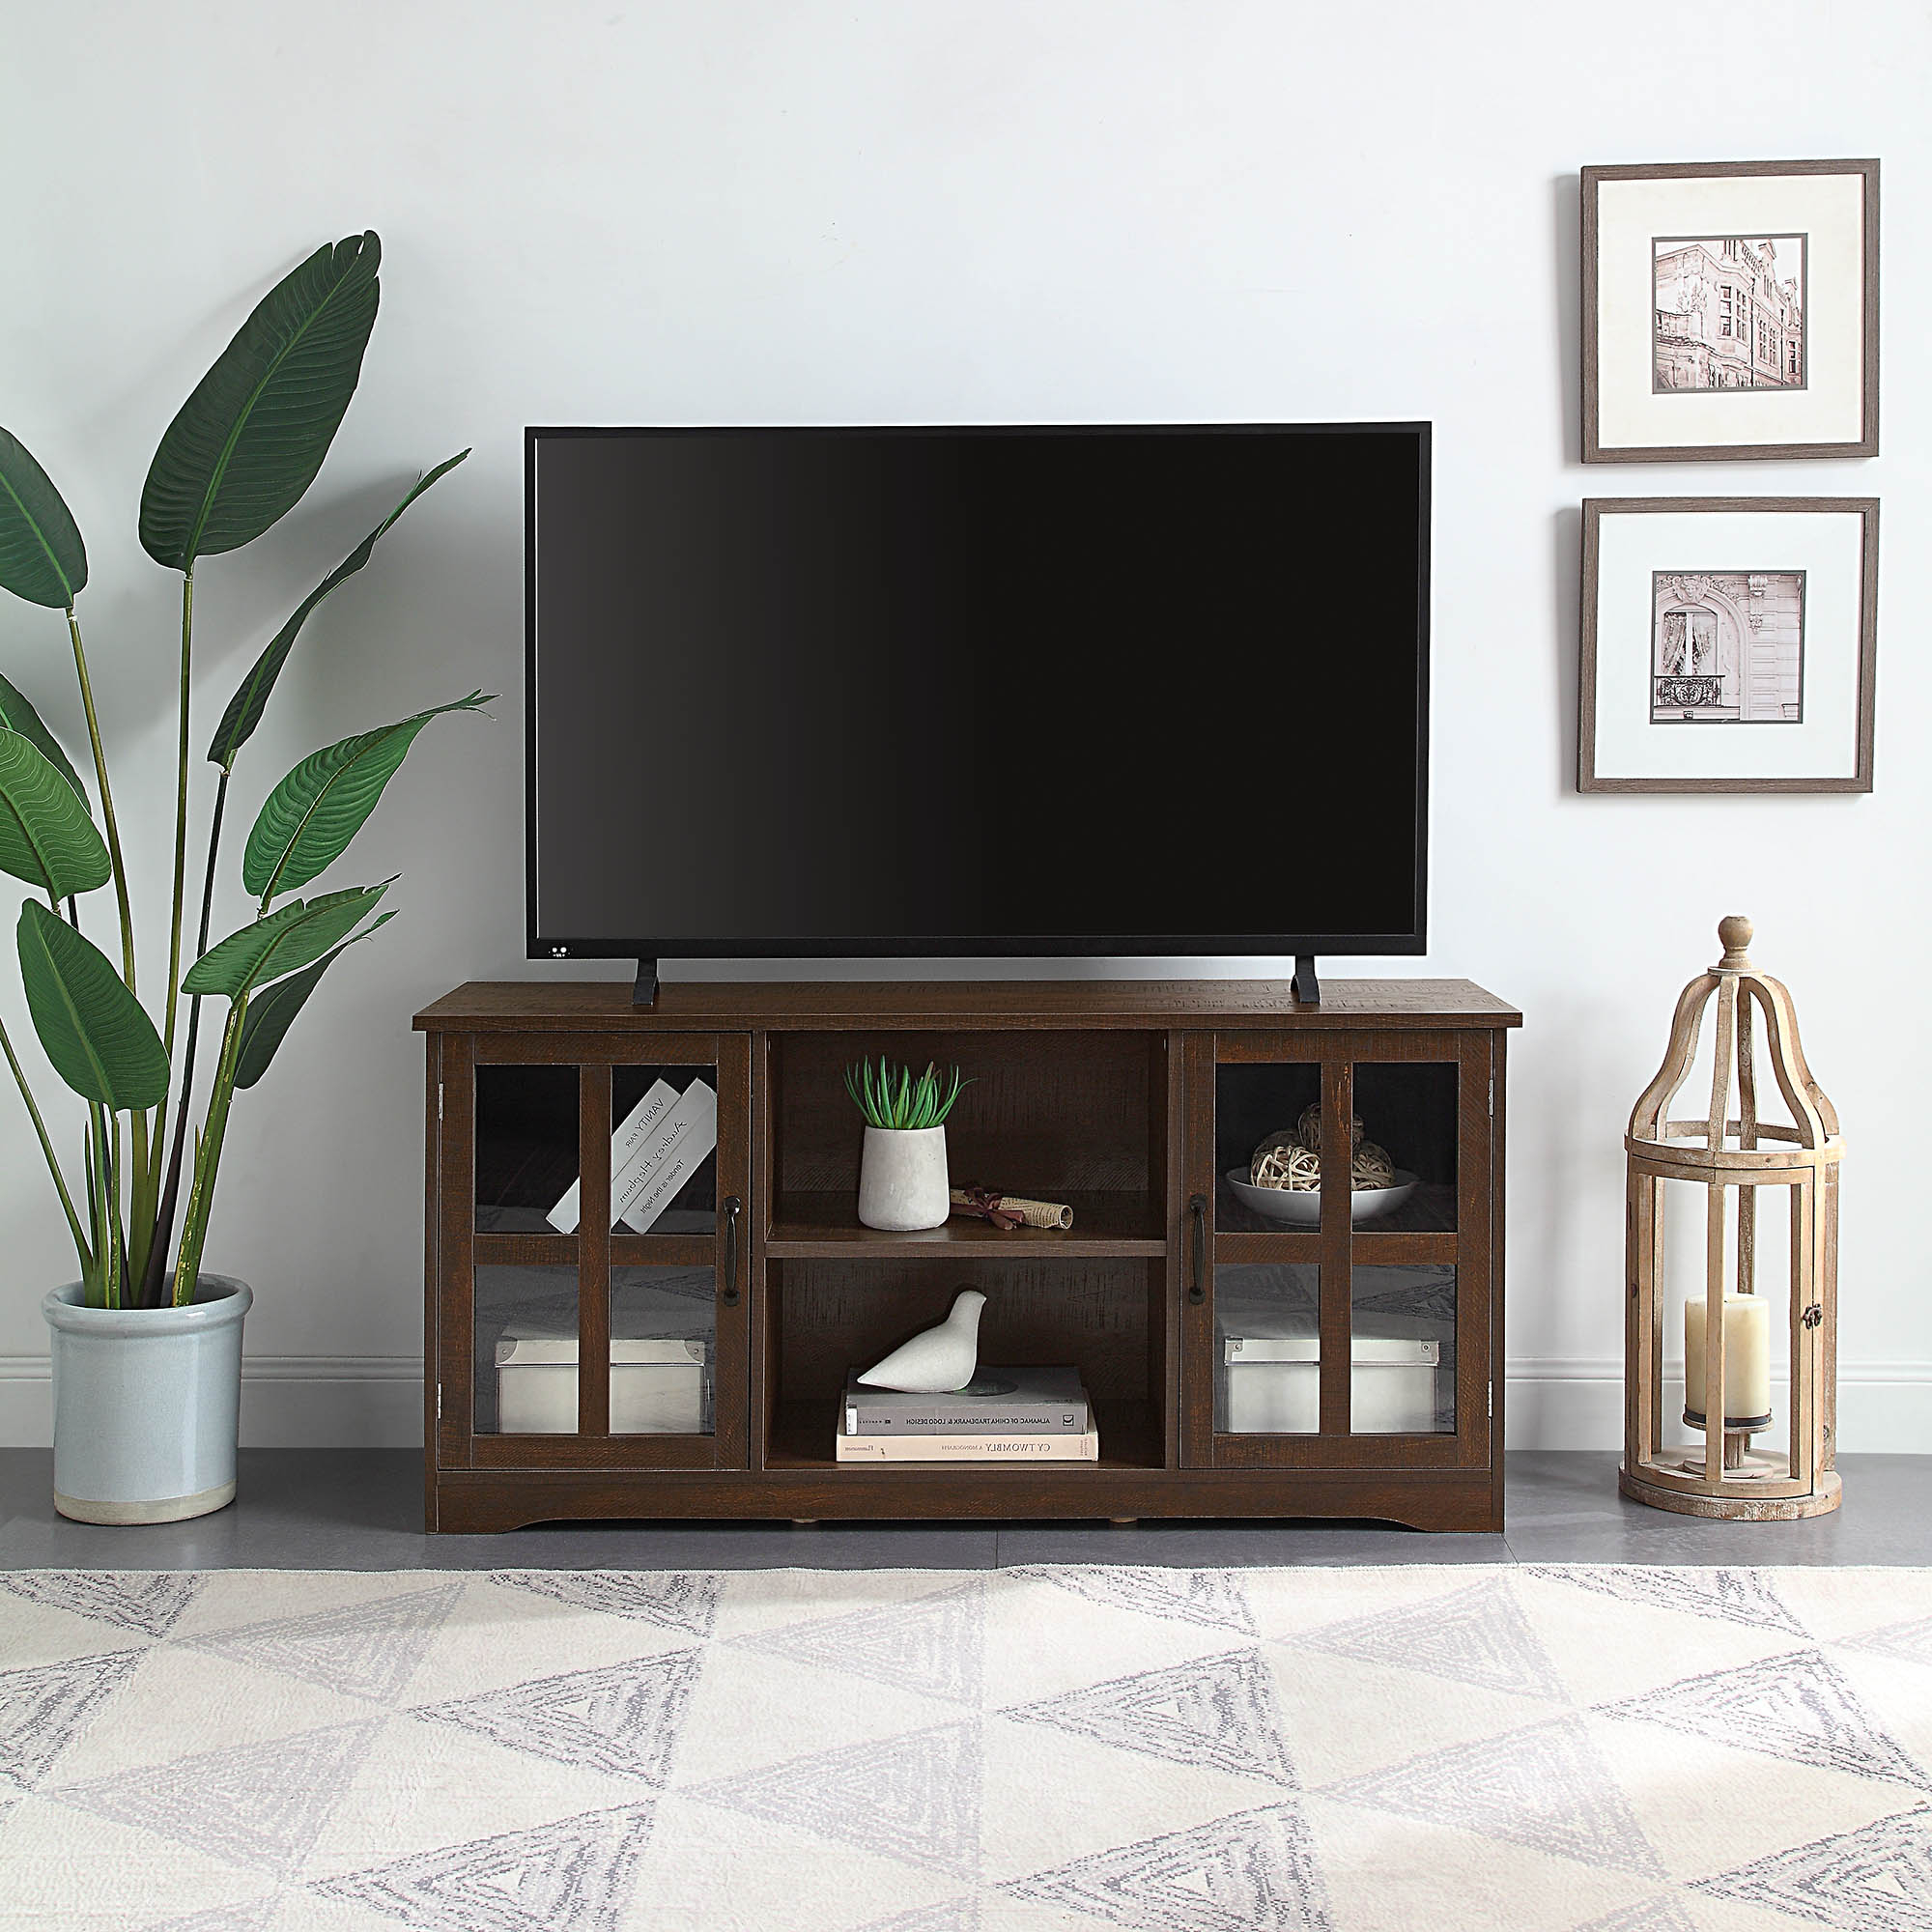 """52 Inch Tv Stand Wood & Glass Console For Tvs Up To 60""""   Ebay Pertaining To Glass Shelves Tv Stands For Tvs Up To 60"""" (View 2 of 20)"""